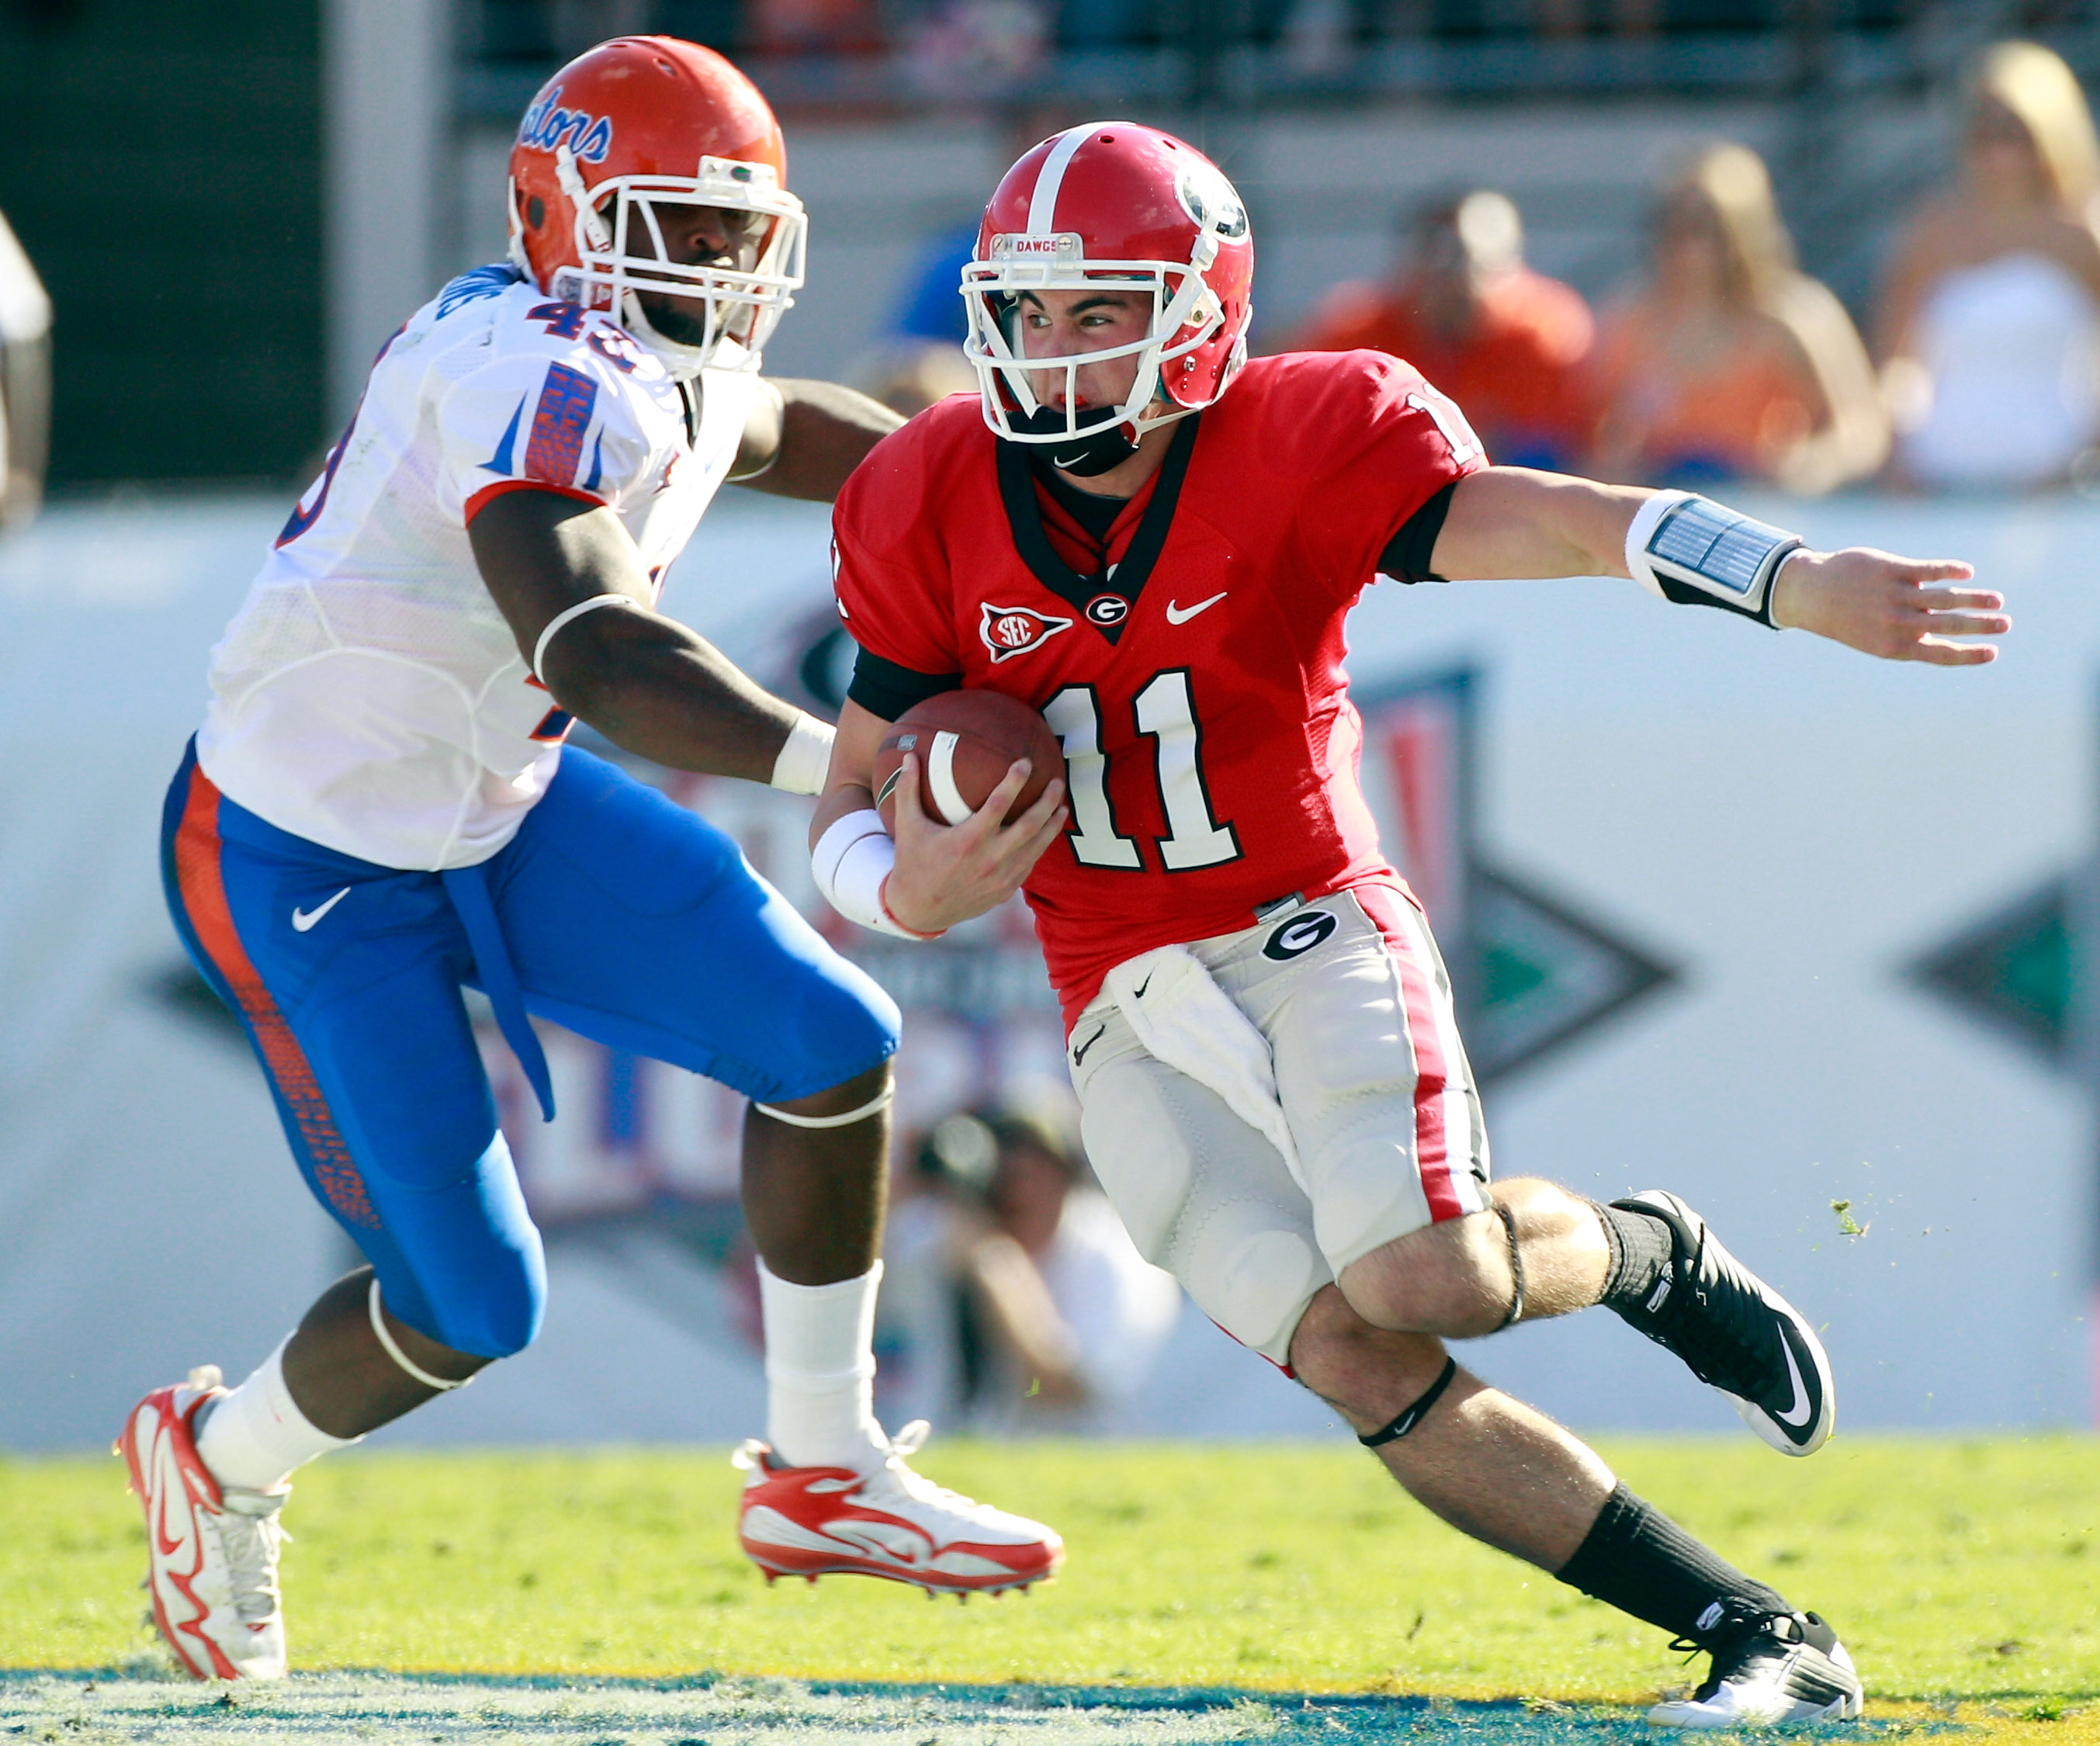 JACKSONVILLE, FL - OCTOBER 30:  Quarterback Aaron Murray #11 of the Georgia Bulldogs runs past Jelani Jenkins #43 of the Florida Gators during the game at EverBank Field on October 30, 2010 in Jacksonville, Florida.  (Photo by Sam Greenwood/Getty Images)